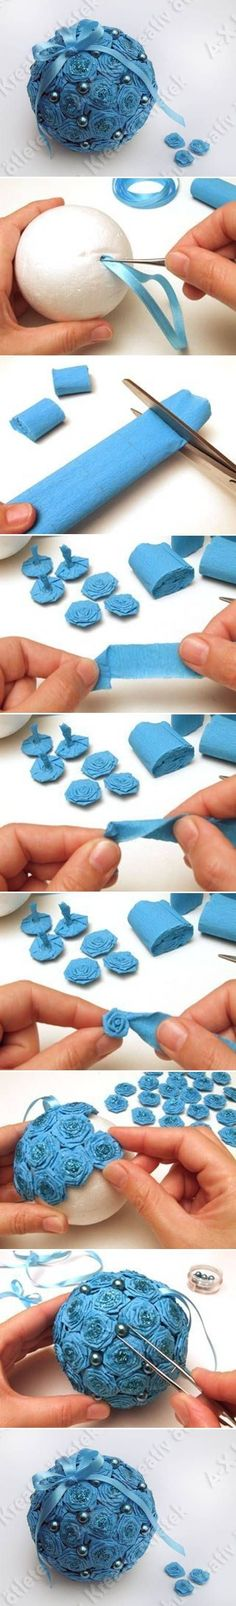 DIY Crepe Paper Flower Ball DIY Projects | UsefulDIY.com